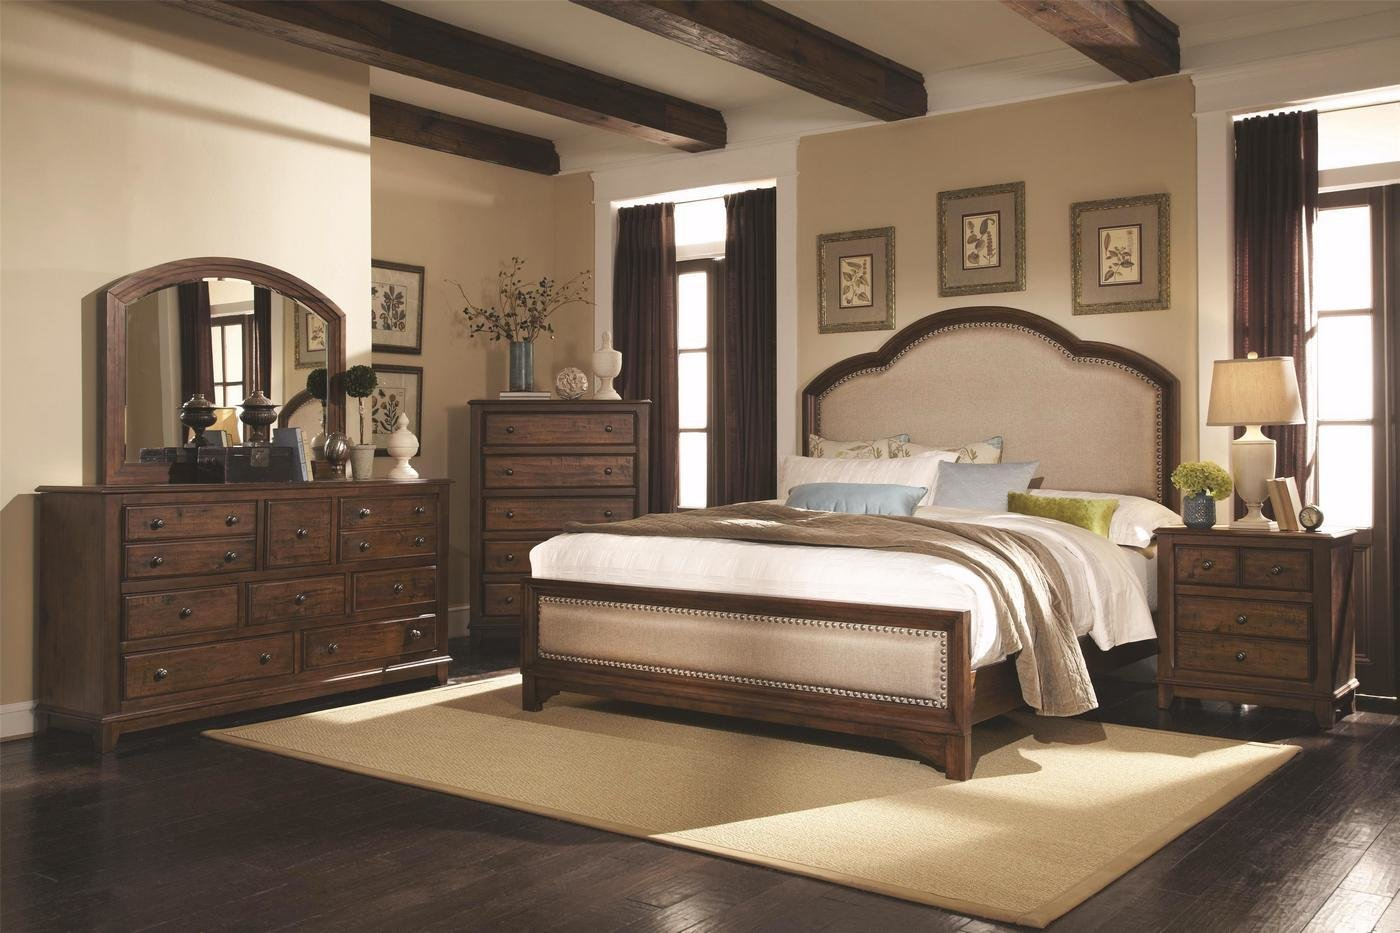 Best Upholstered Headboard Laughton Rustic Bedroom Set With Pictures